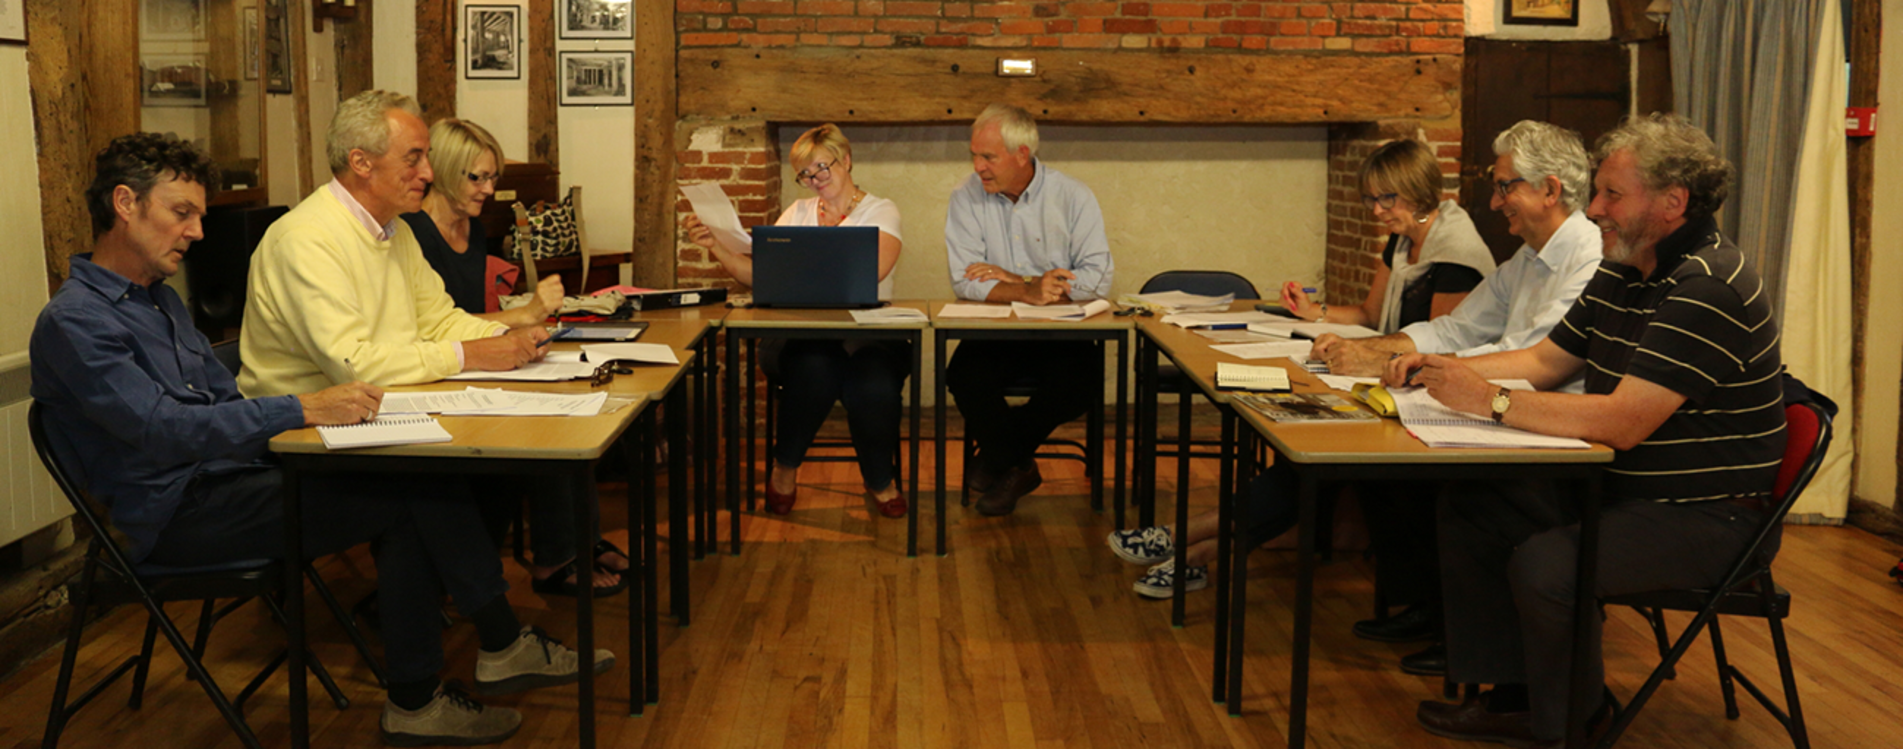 barley-parish-council-at-their-monthly-meeting-in-the-town-house (cropped)